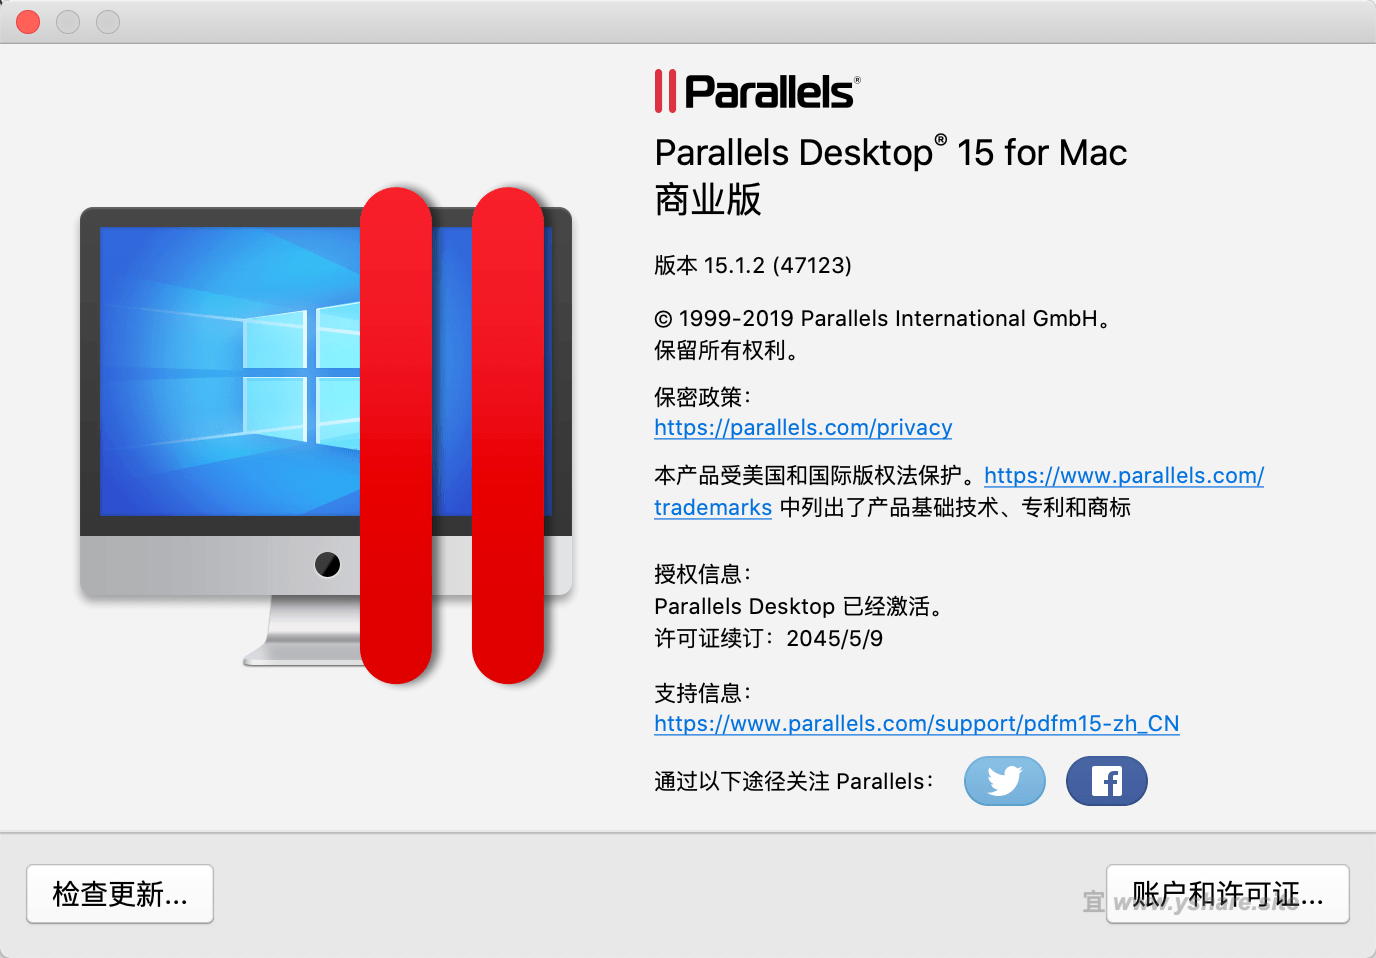 parallels desktop 15 for mac 教育 版